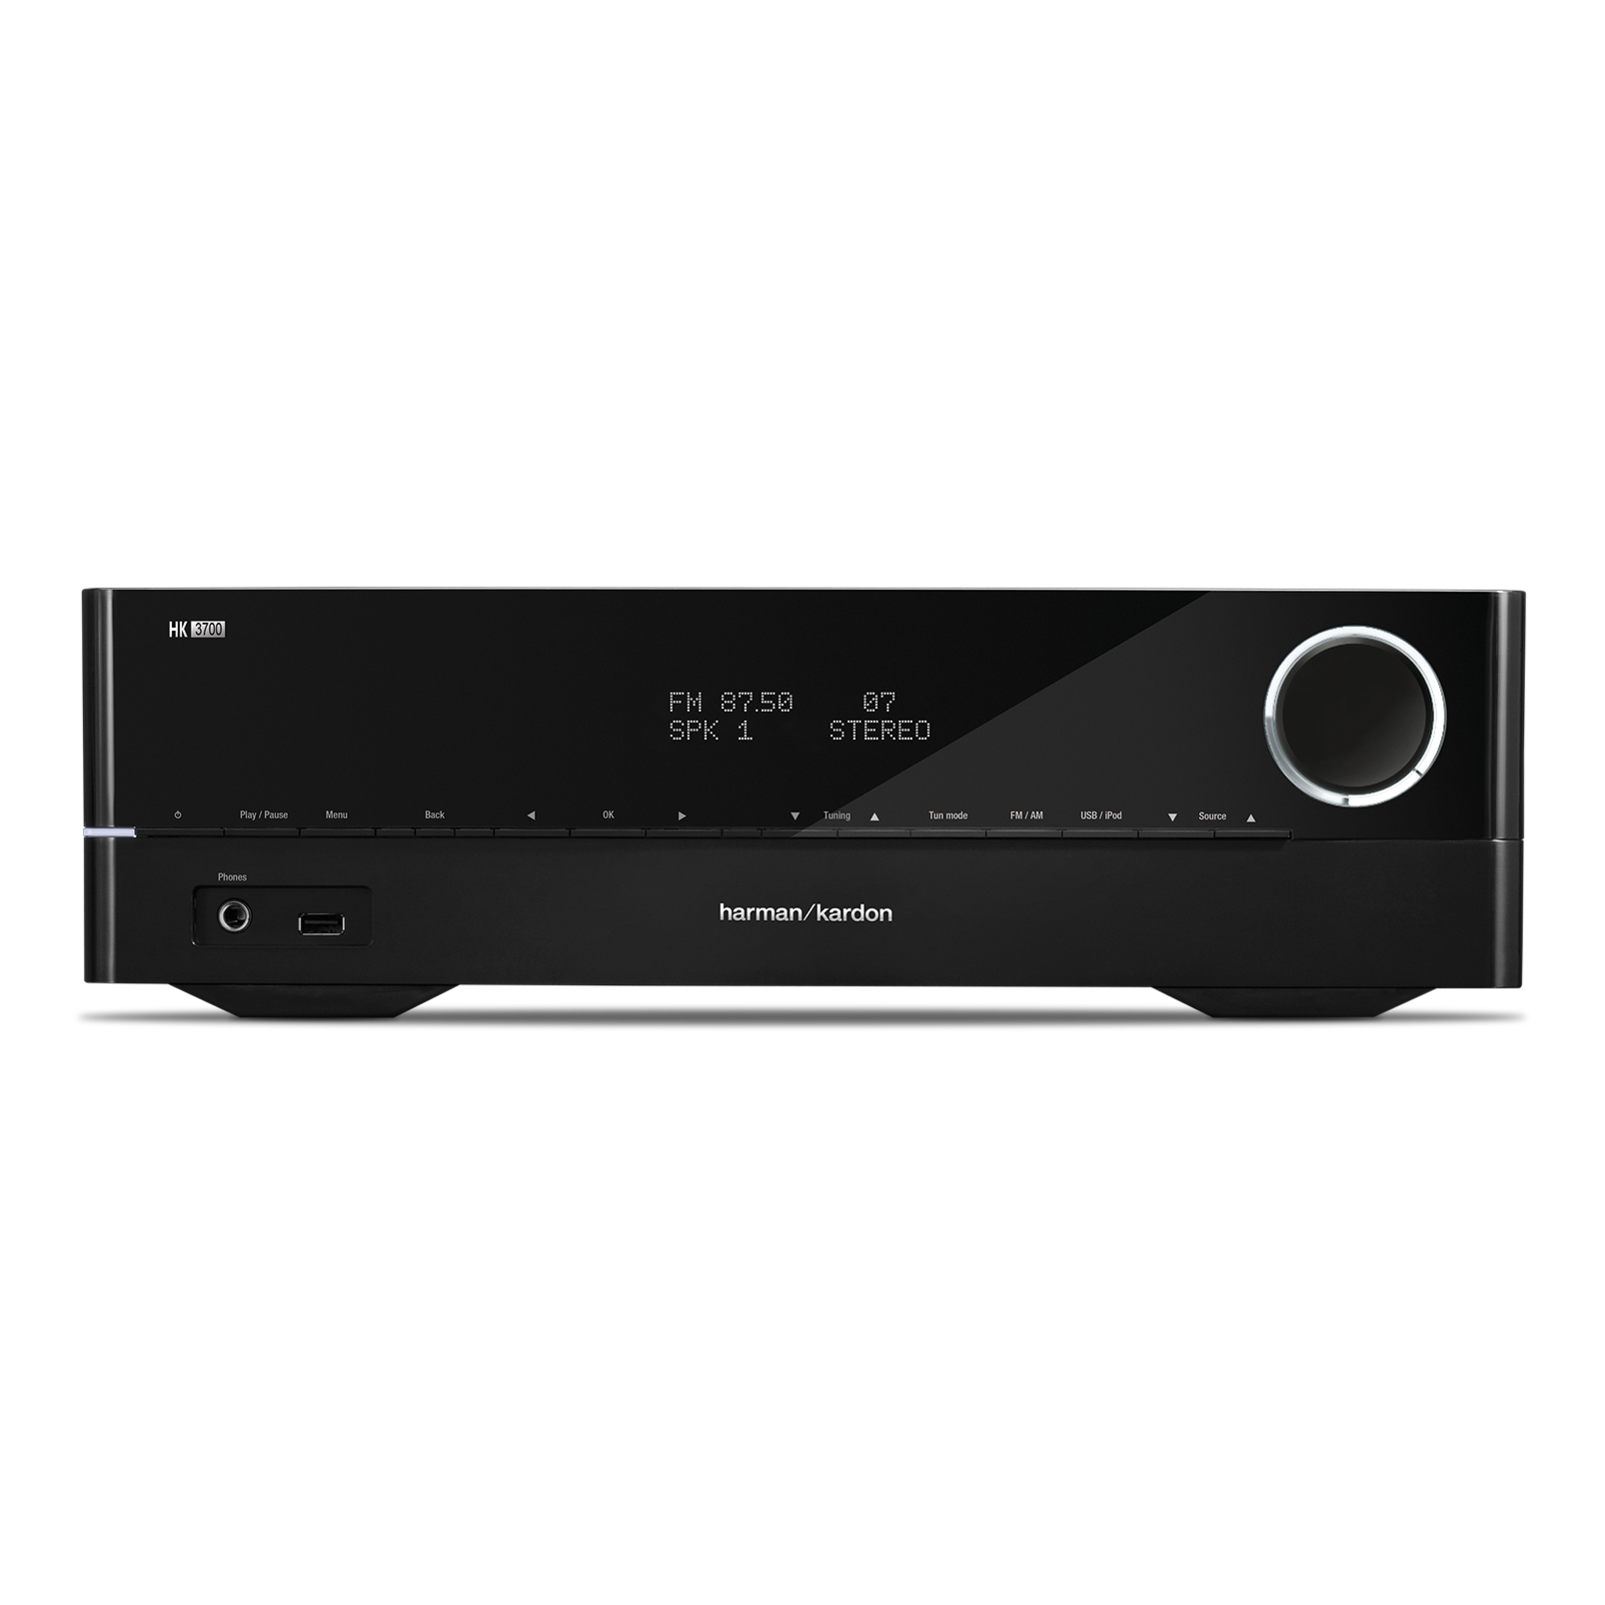 HK 3700 - Black - 170 watt stereo receiver with network connectivity - Hero